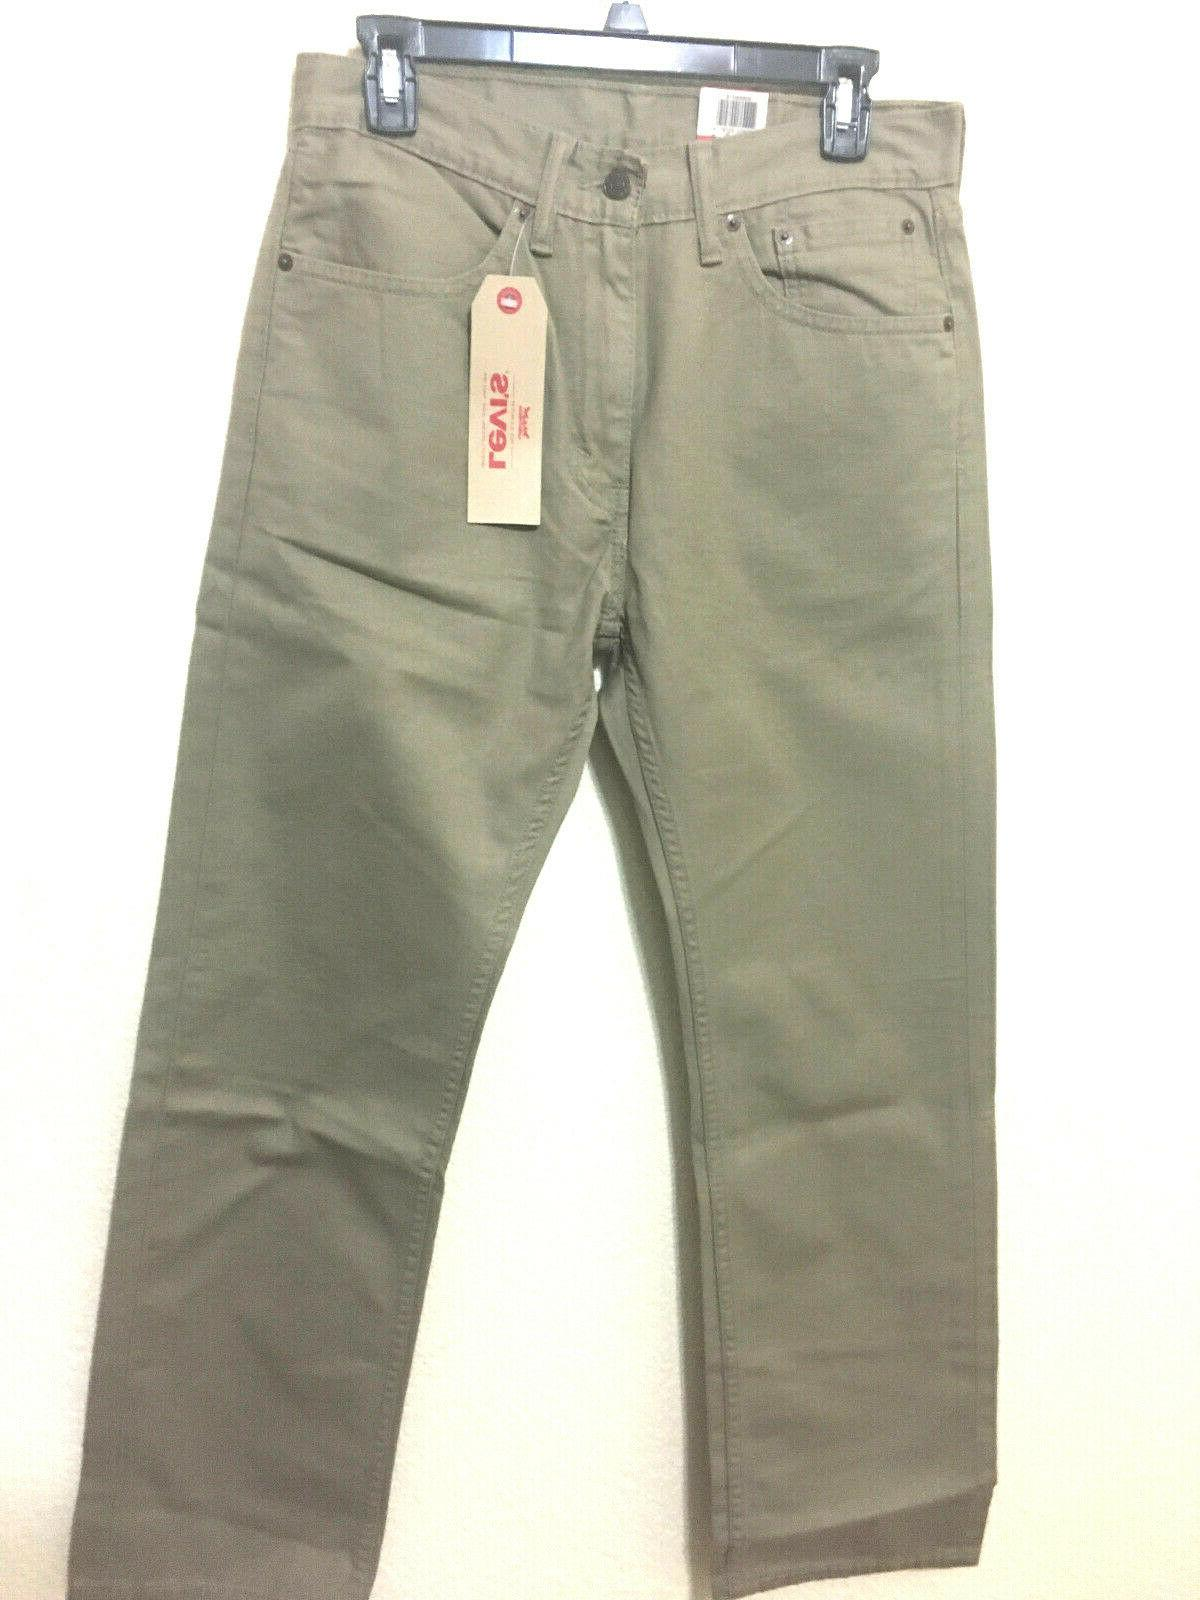 NWT MEN LEVI'S 505 - 0718 REGULAR FIT STRAIGHT LEG JEANS PANT DENIM TIMBER